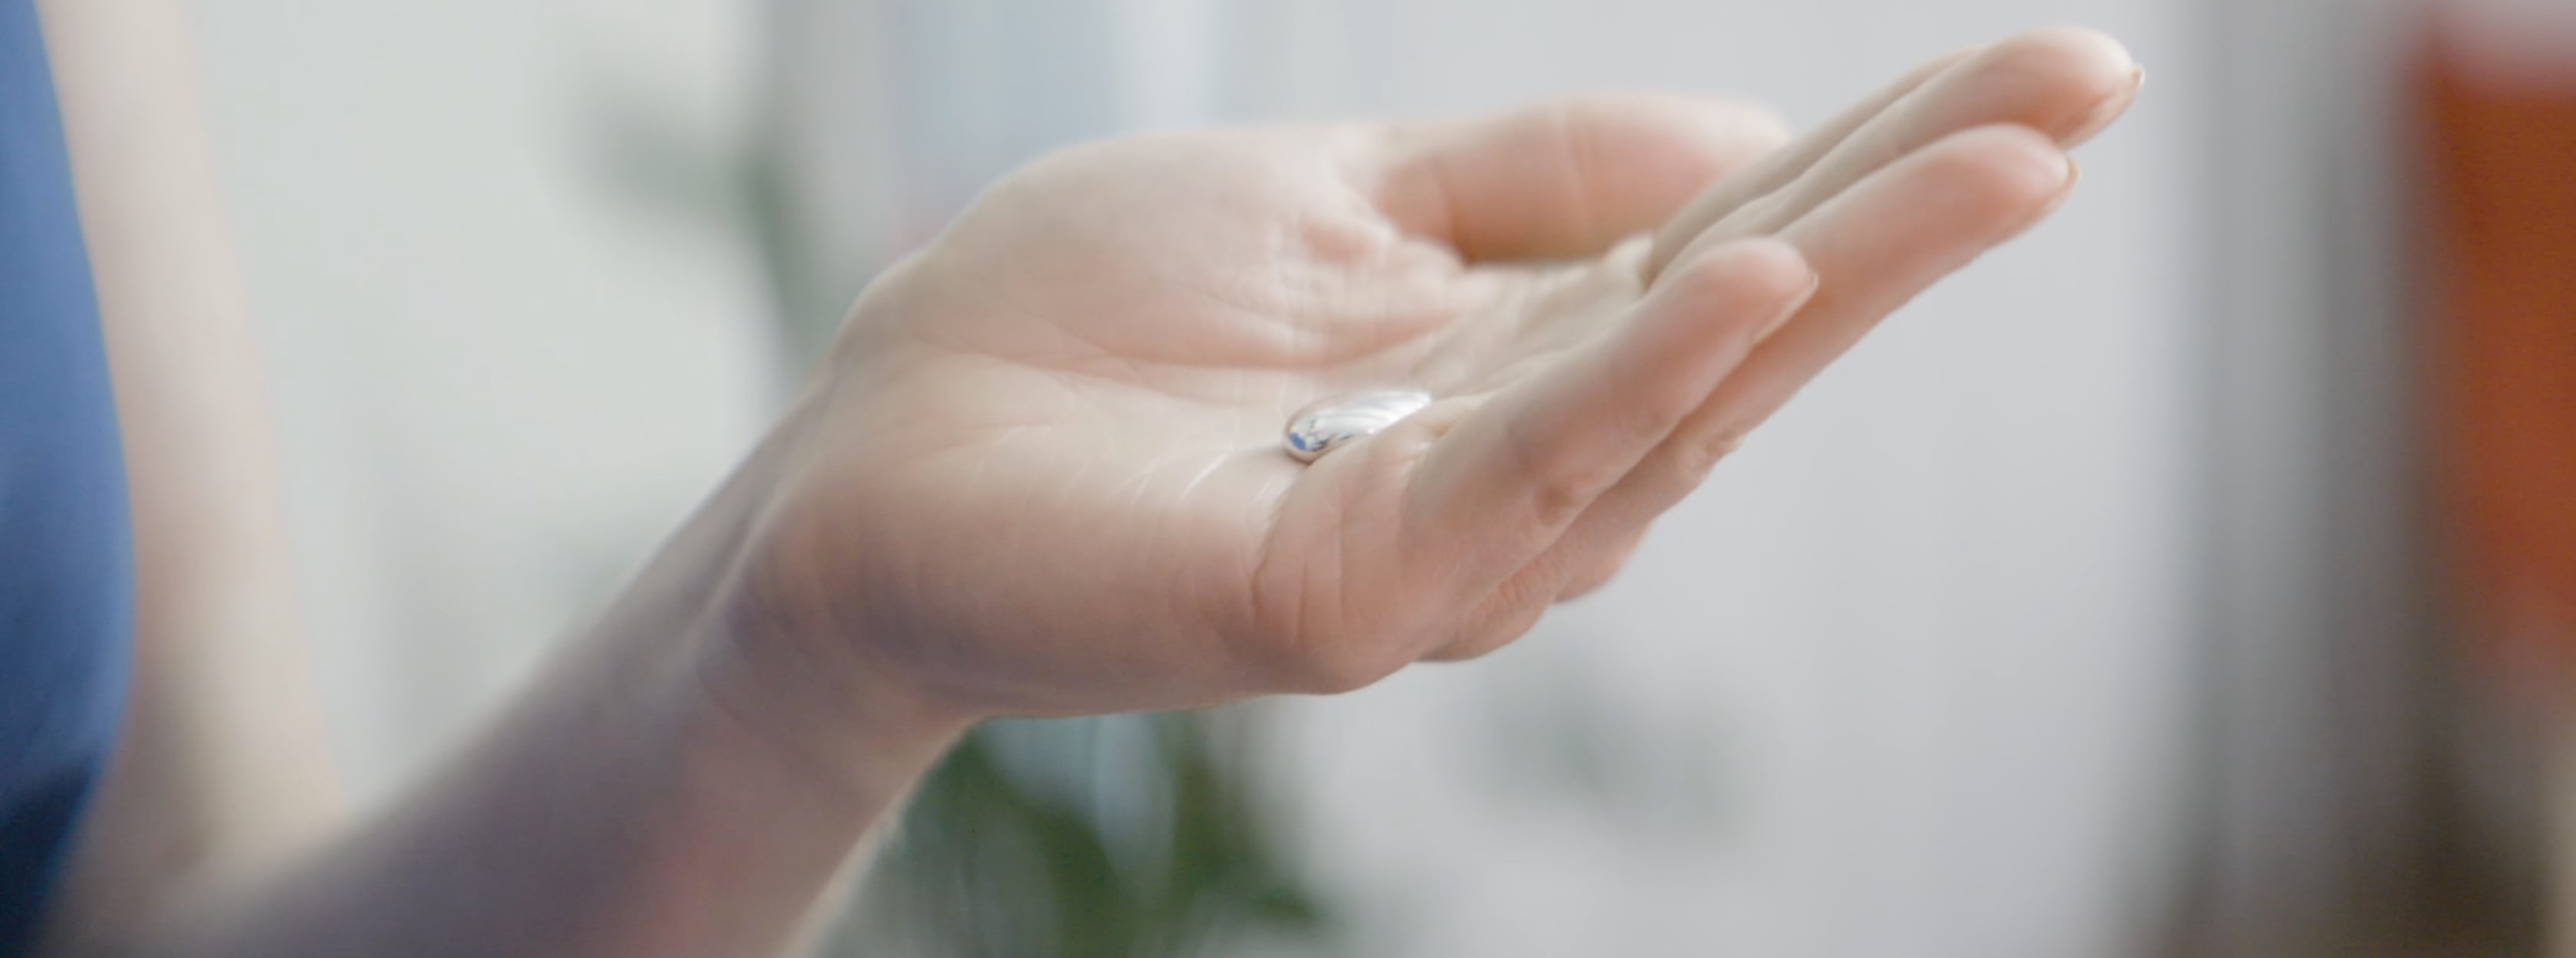 A small silver liquid in the palm of a woman's hand